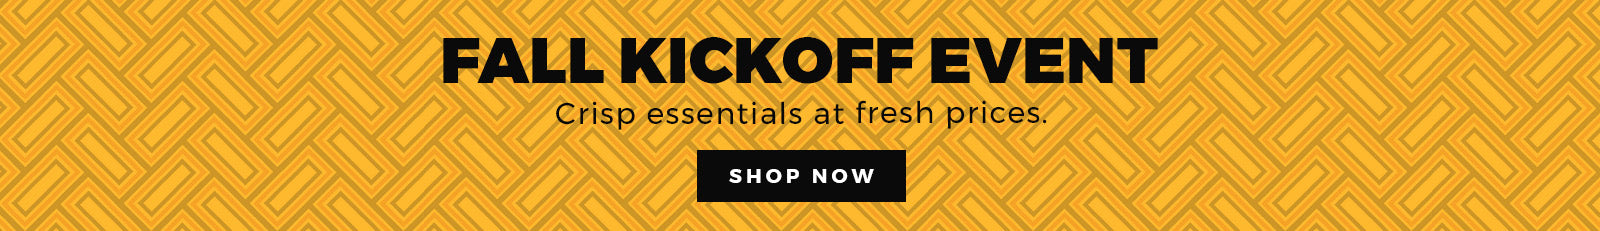 FALL KICKOFF EVENT - Shop Now